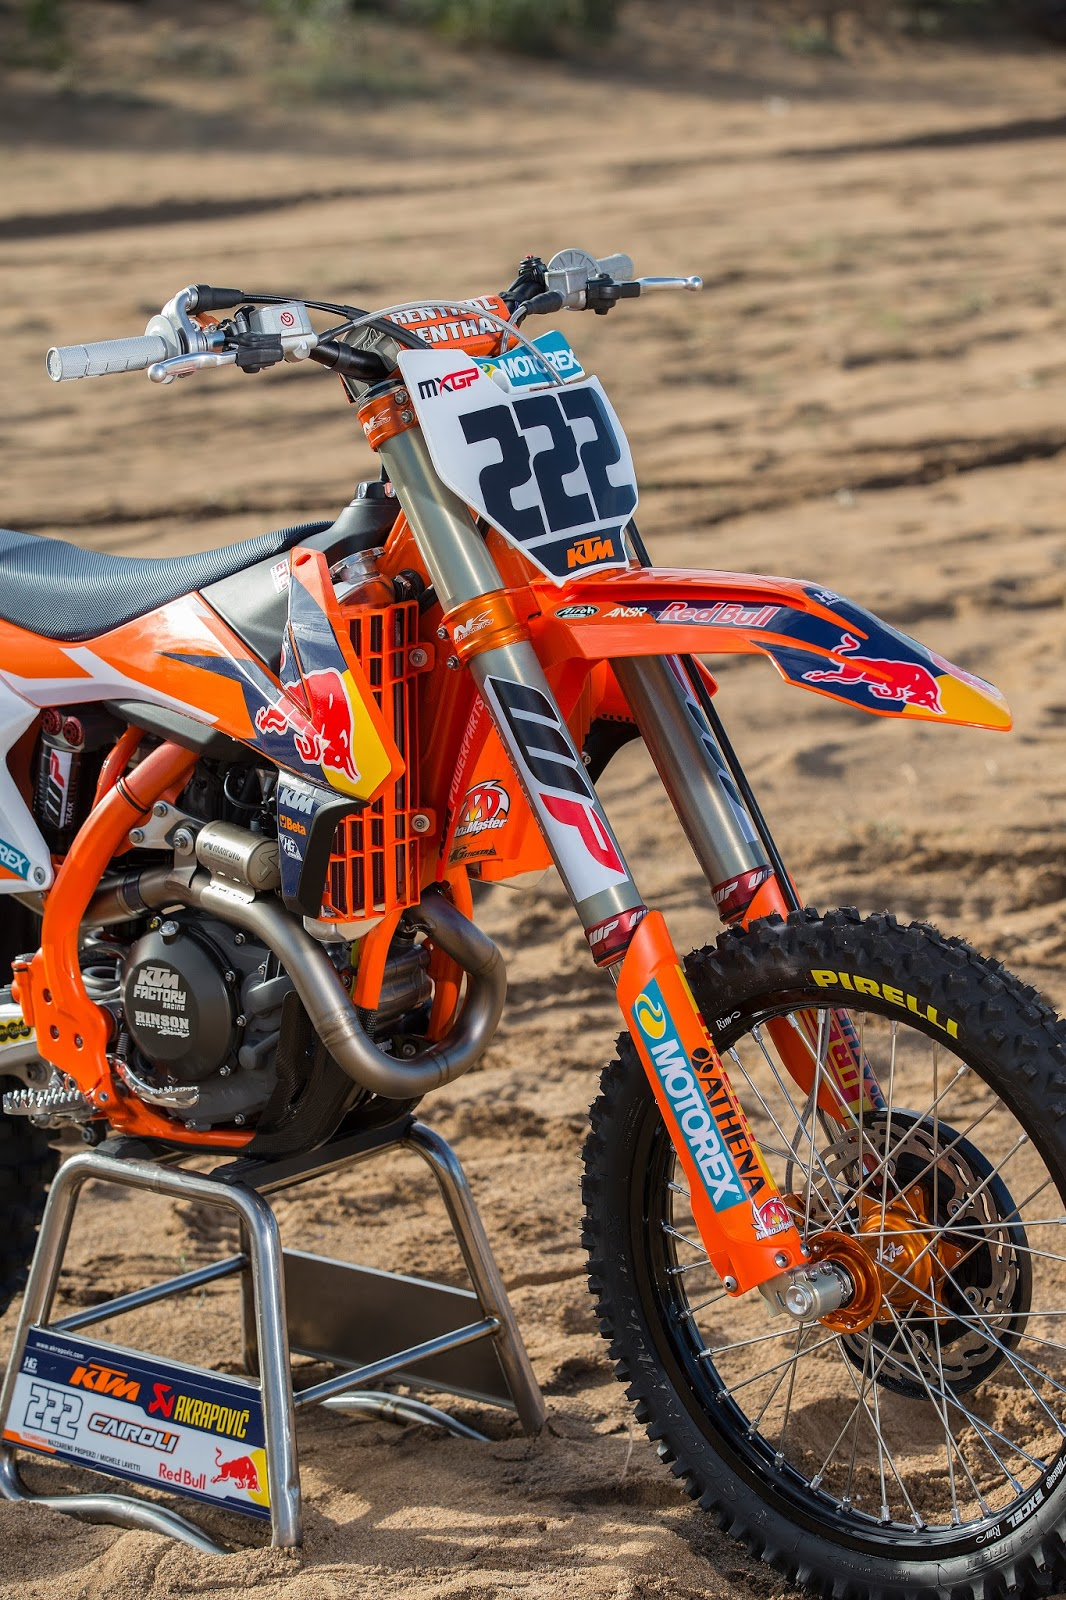 Racing Cafè: KTM SX-450F Team Red Bull KTM Factory Racing ...